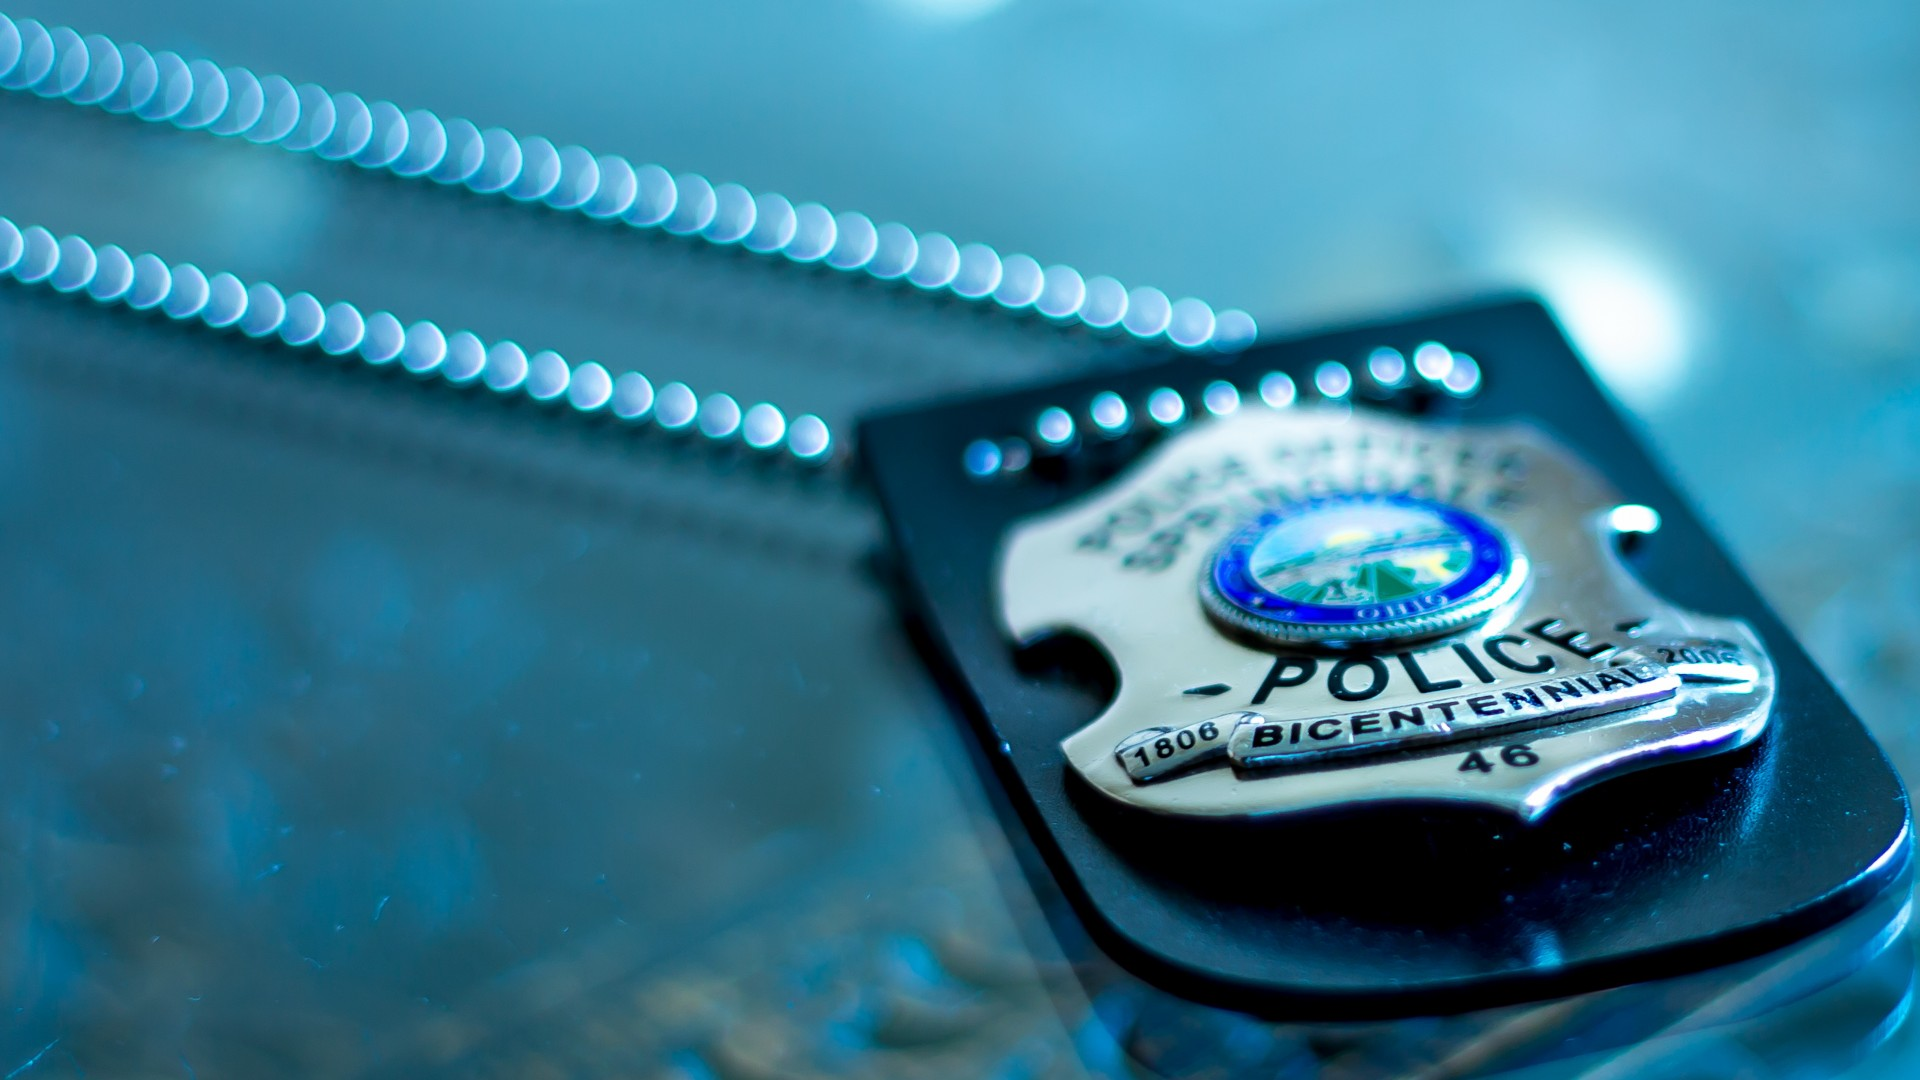 Police badge text chain macro wallpaper | 1920x1080 | 45274 ...